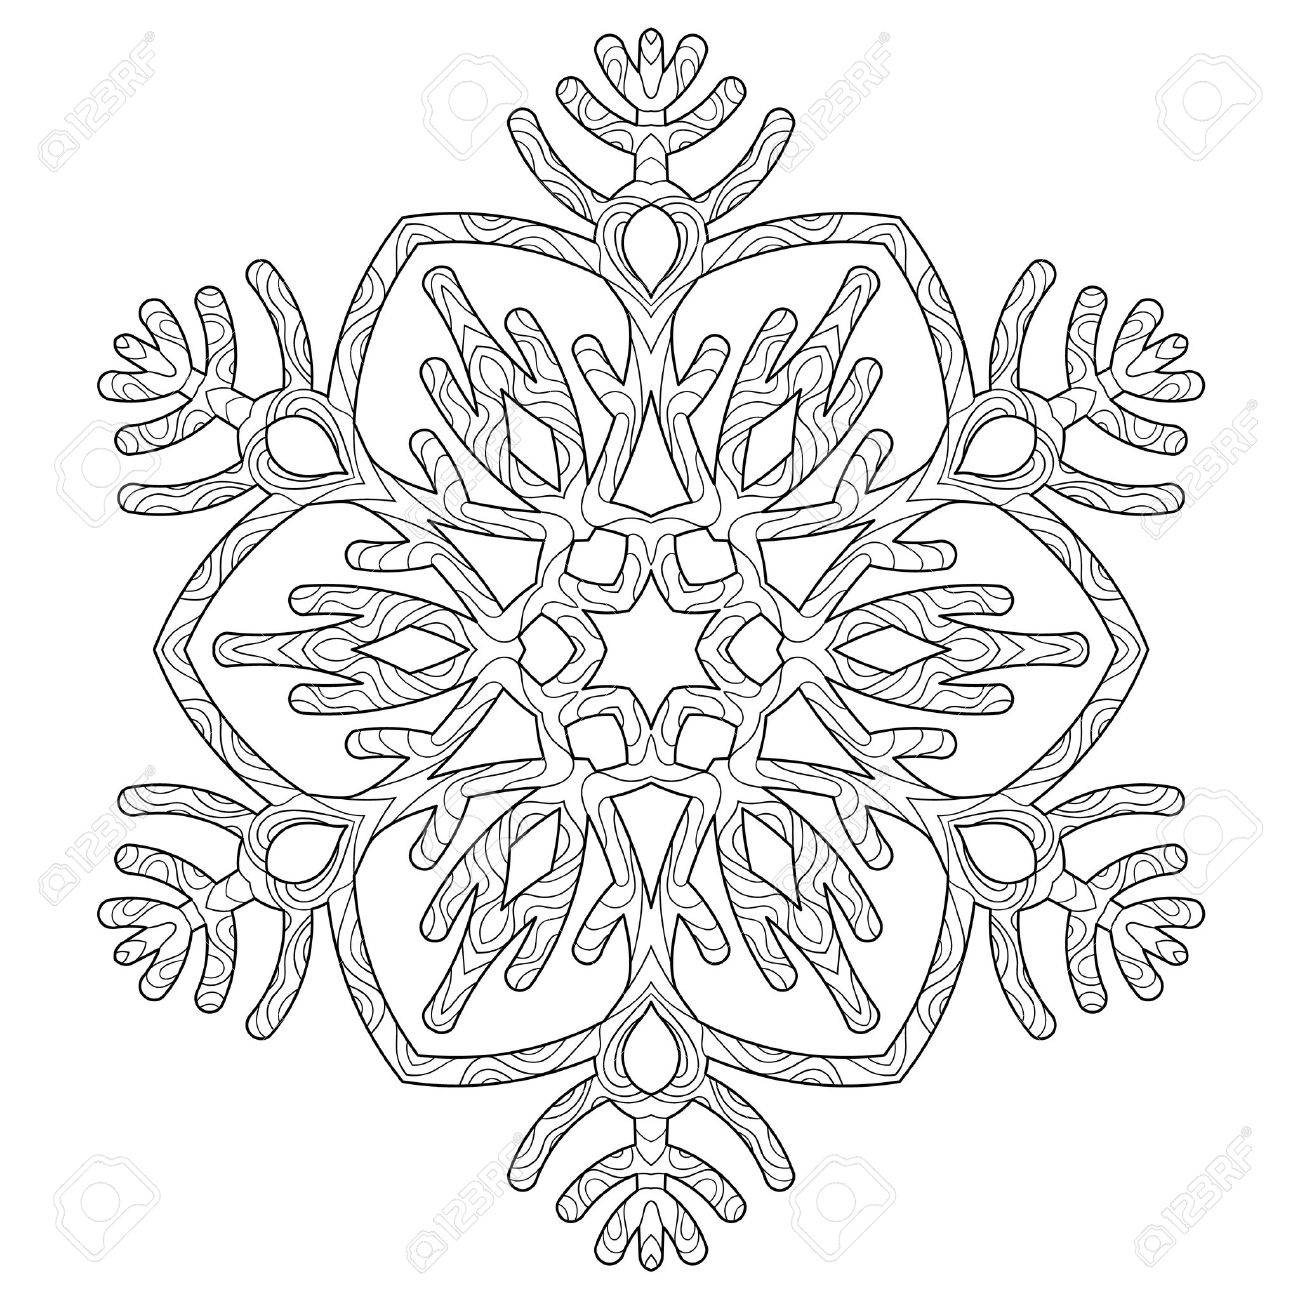 hand drawn antistress snowflake tracery template in zentangle